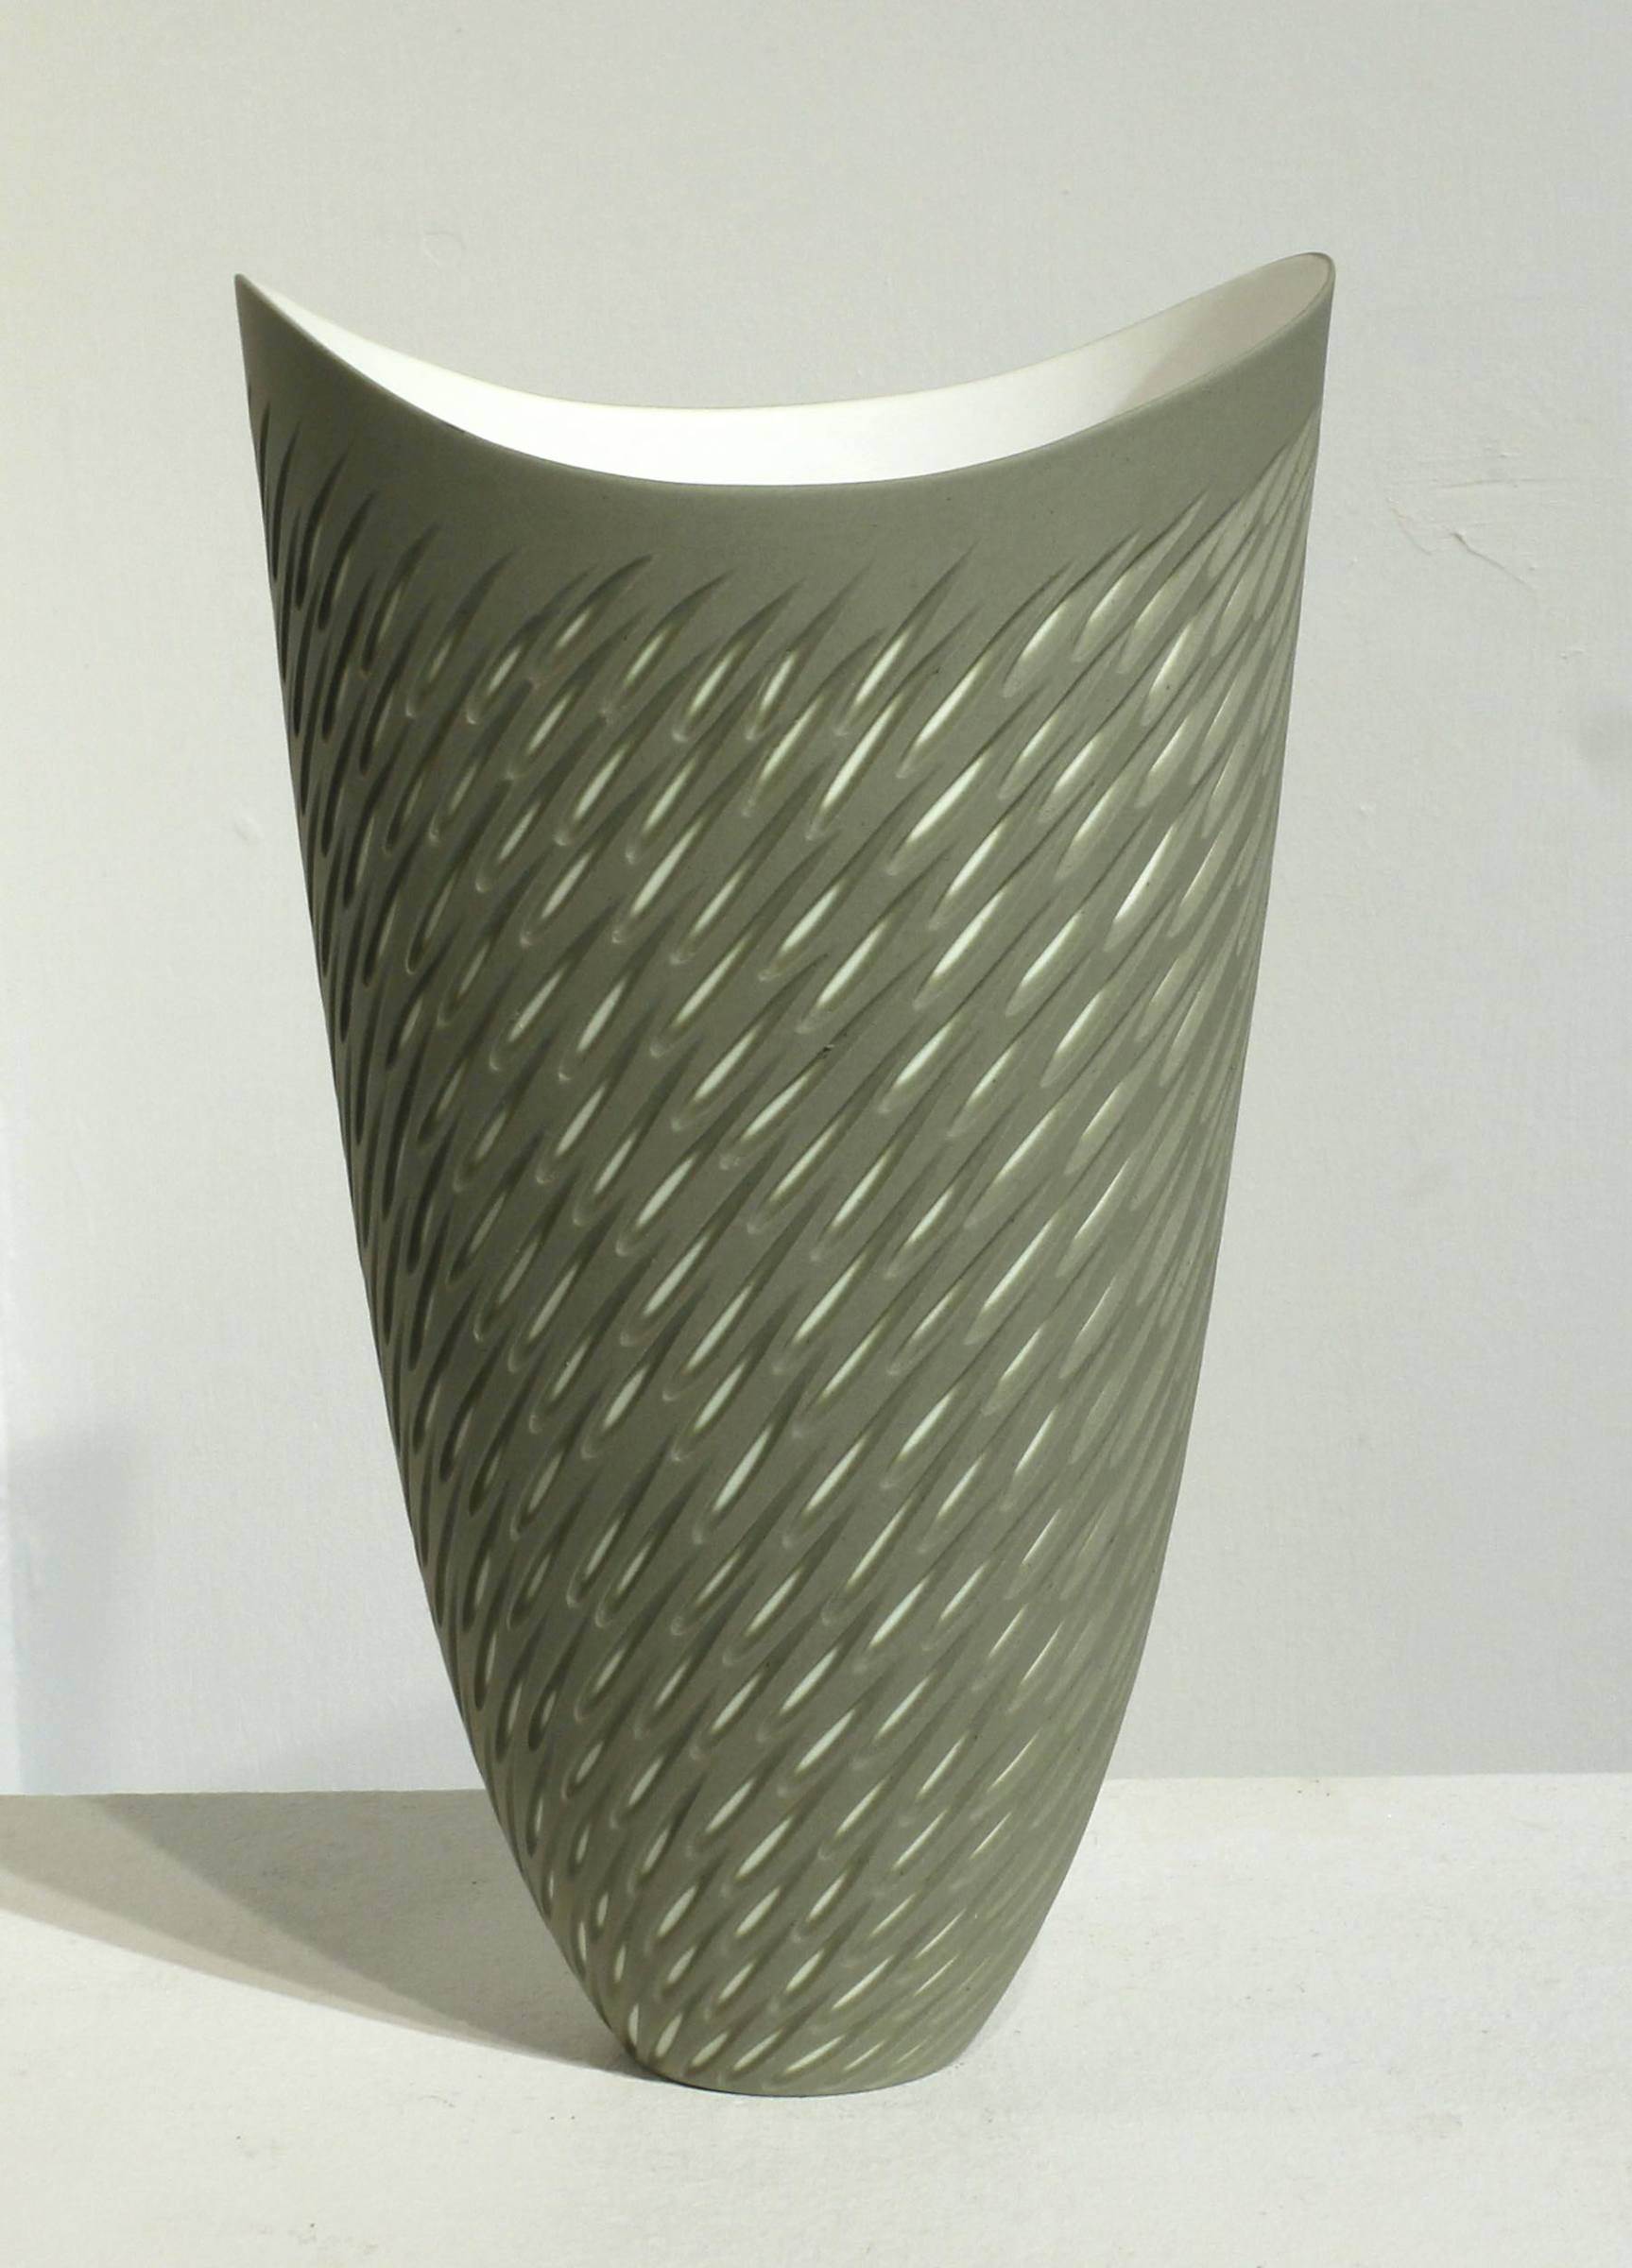 "<span class=""link fancybox-details-link""><a href=""/artists/60-sasha-wardell/works/5114-sasha-wardell-olive-shoal-vase-2017/"">View Detail Page</a></span><div class=""artist""><strong>Sasha Wardell</strong></div> <div class=""title""><em>Olive Shoal Vase </em>, 2017</div> <div class=""signed_and_dated"">inscribed with artist initials on base</div> <div class=""medium"">layered and sliced bone china</div> <div class=""dimensions"">h. 25 x w. 15 x d. 12 cm</div>"